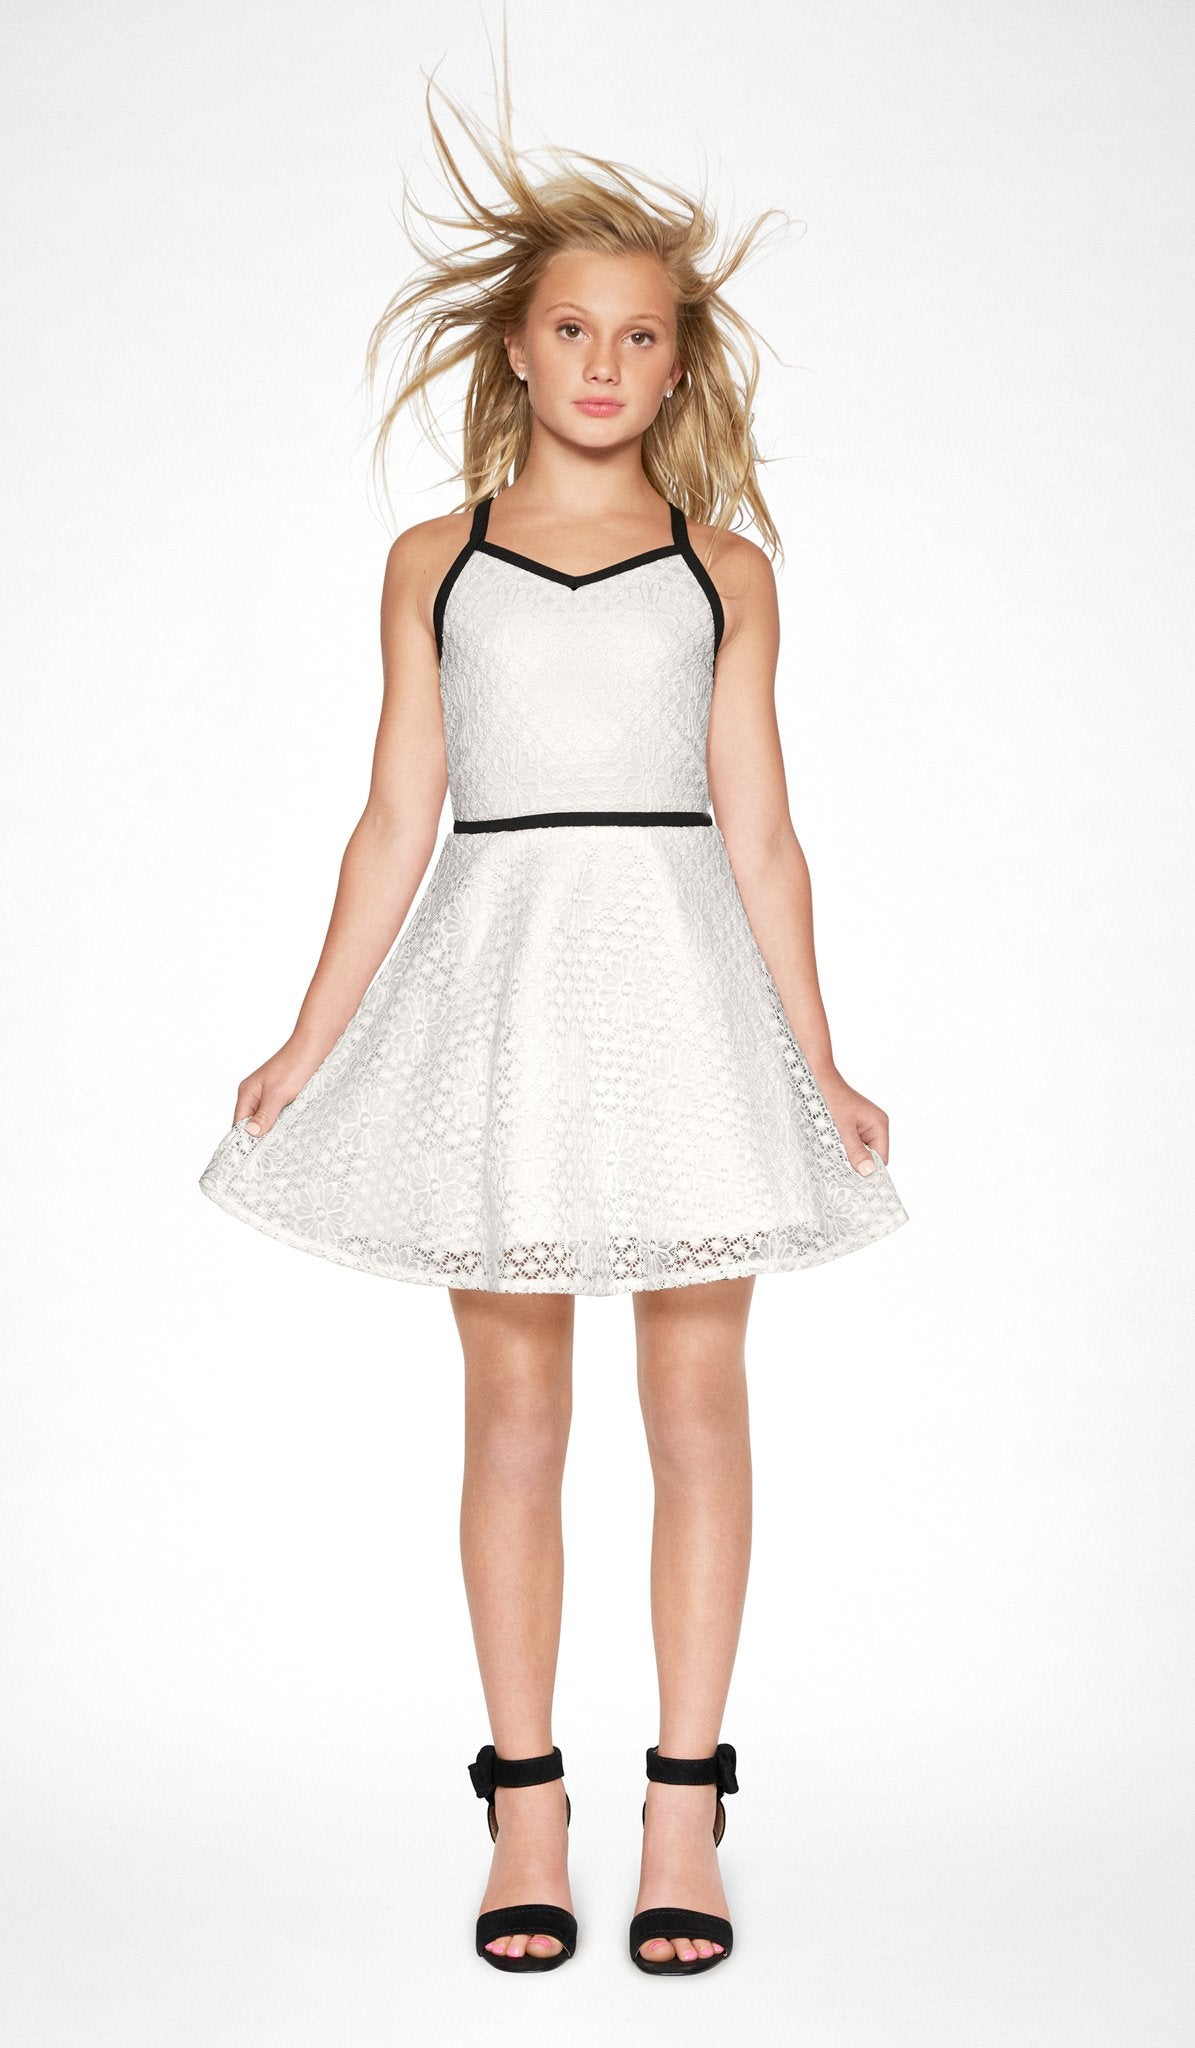 THE AUDREY DRESS - Sallymiller.com - [variant title] - | Event & Party Dresses for Tween Girls & Juniors | Weddings Dresses, Bat Mitzvah Dresses, Sweet Sixteen Dresses, Graduation Dresses, Birthday Party Dresses, Bar Mitzvah Dresses, Cotillion Dresses